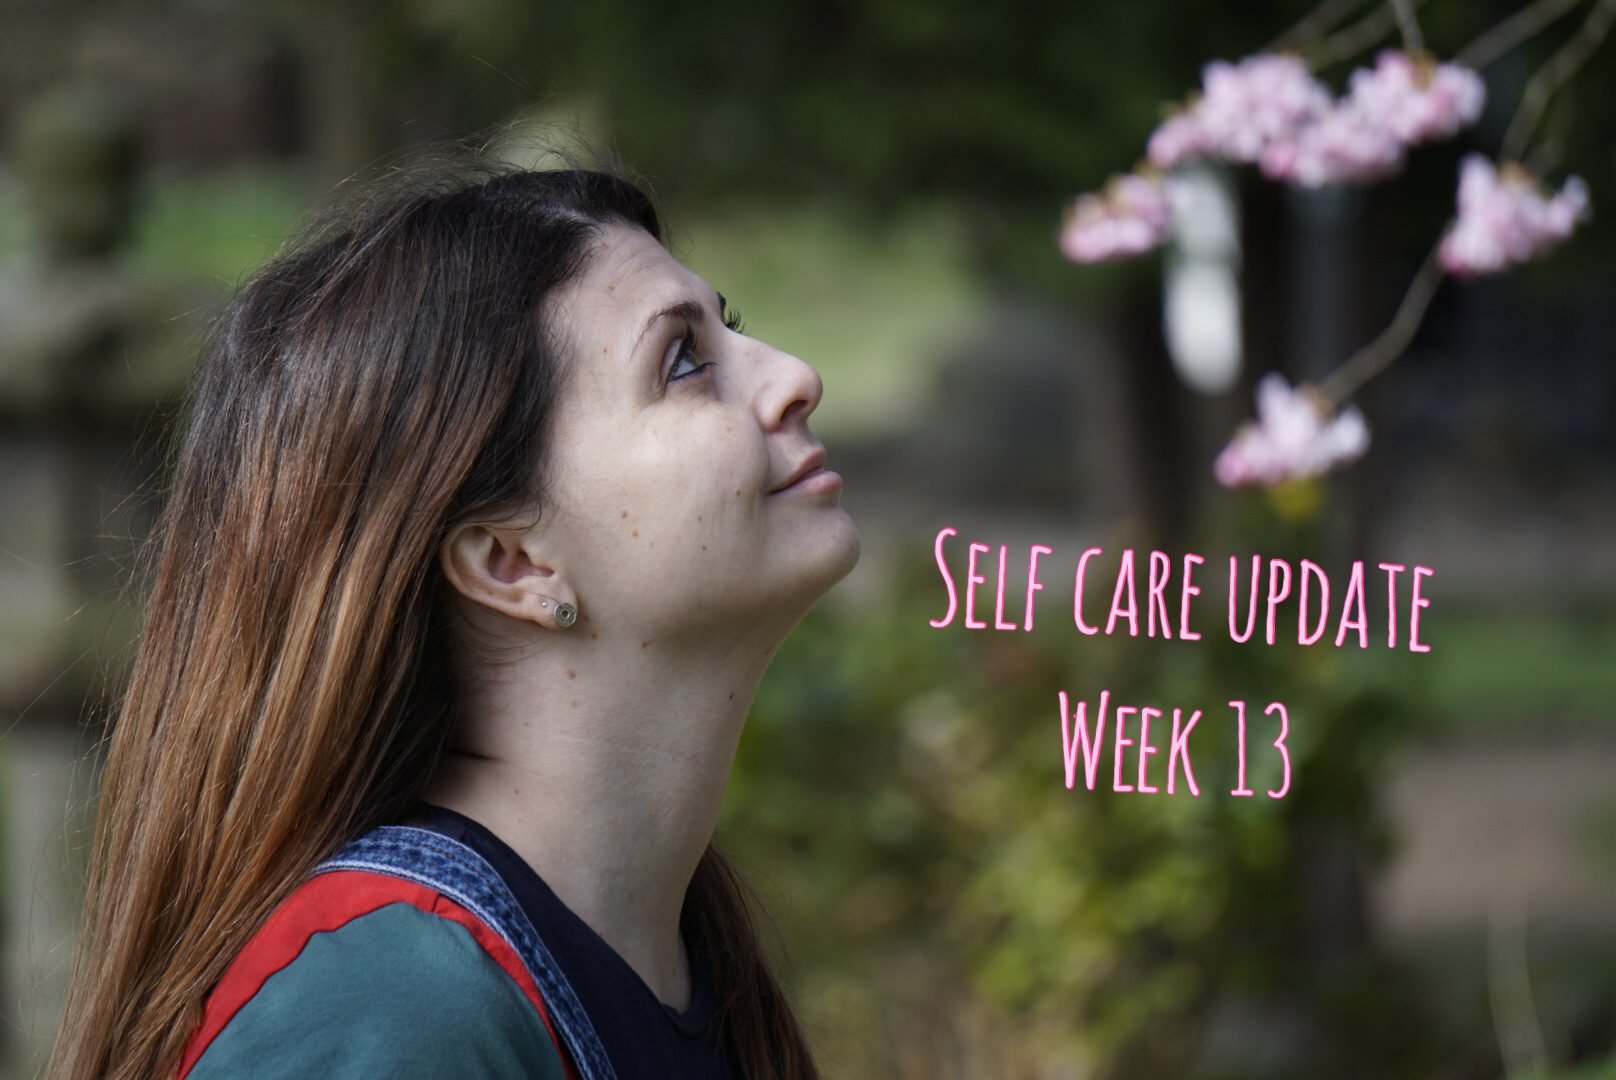 Self Care Update Week 13 graphic